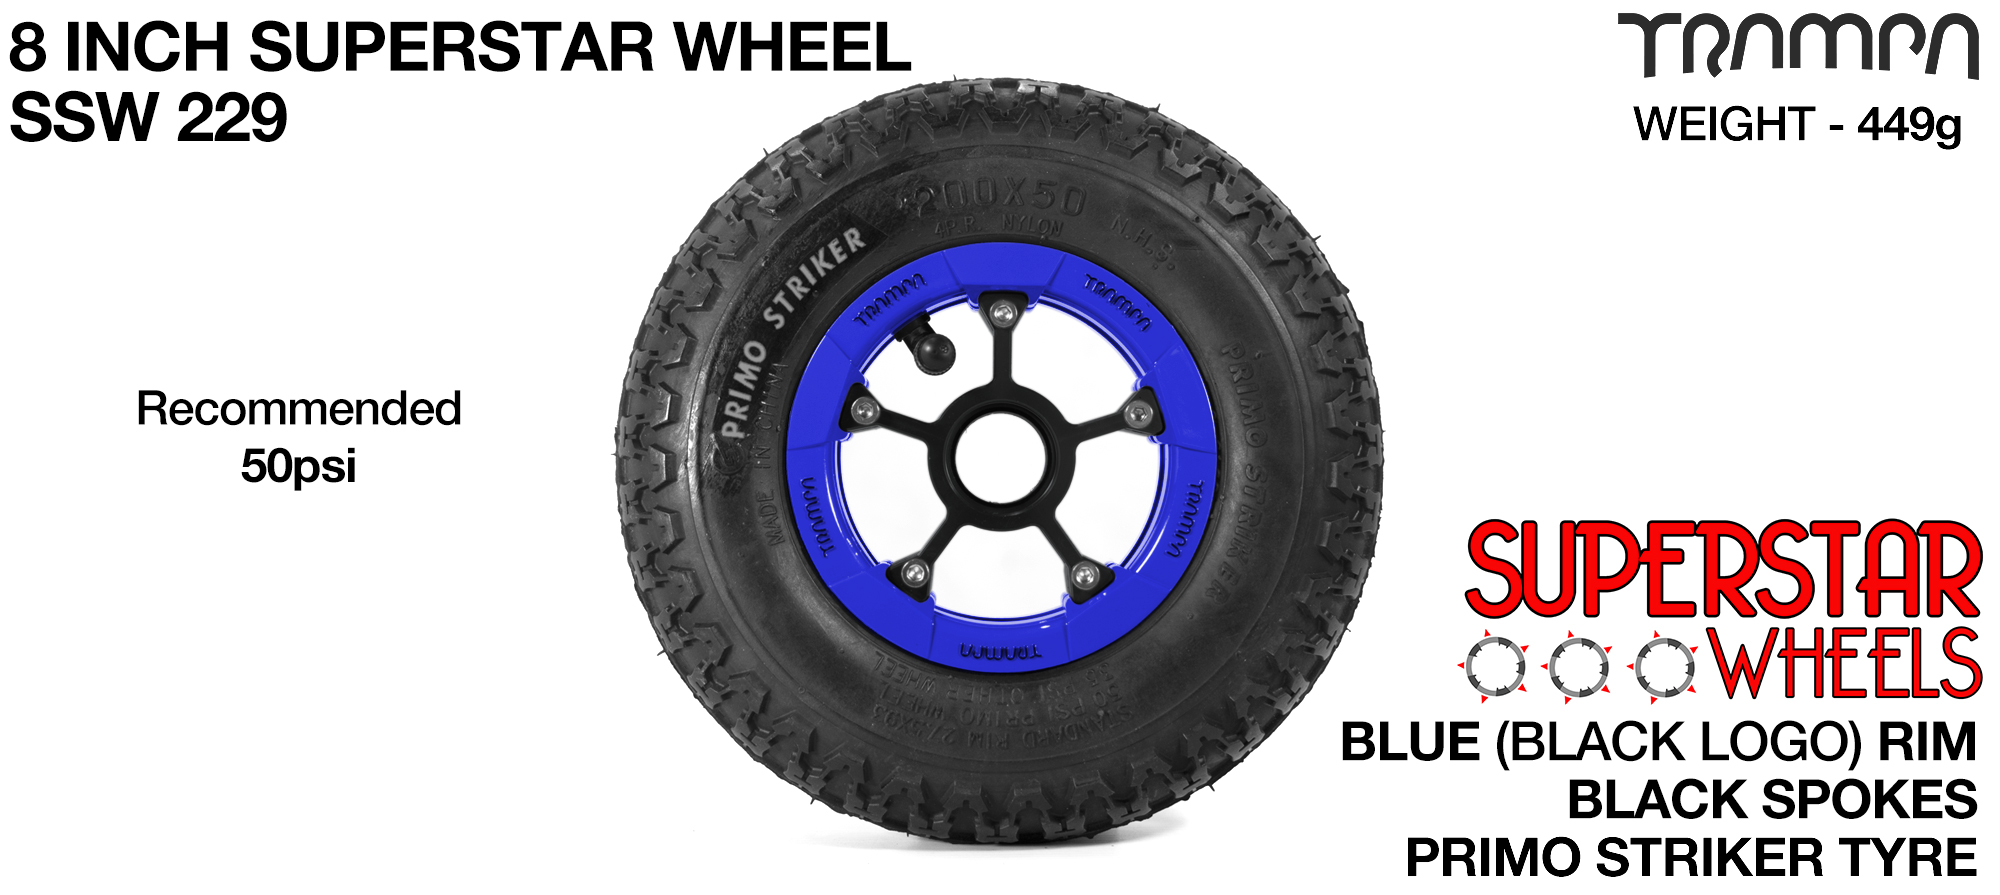 Superstar 8 Inch Wheel - Blue Superstar Rim Black Anodised Spokes & Primo Striker 8 Inch Tyre